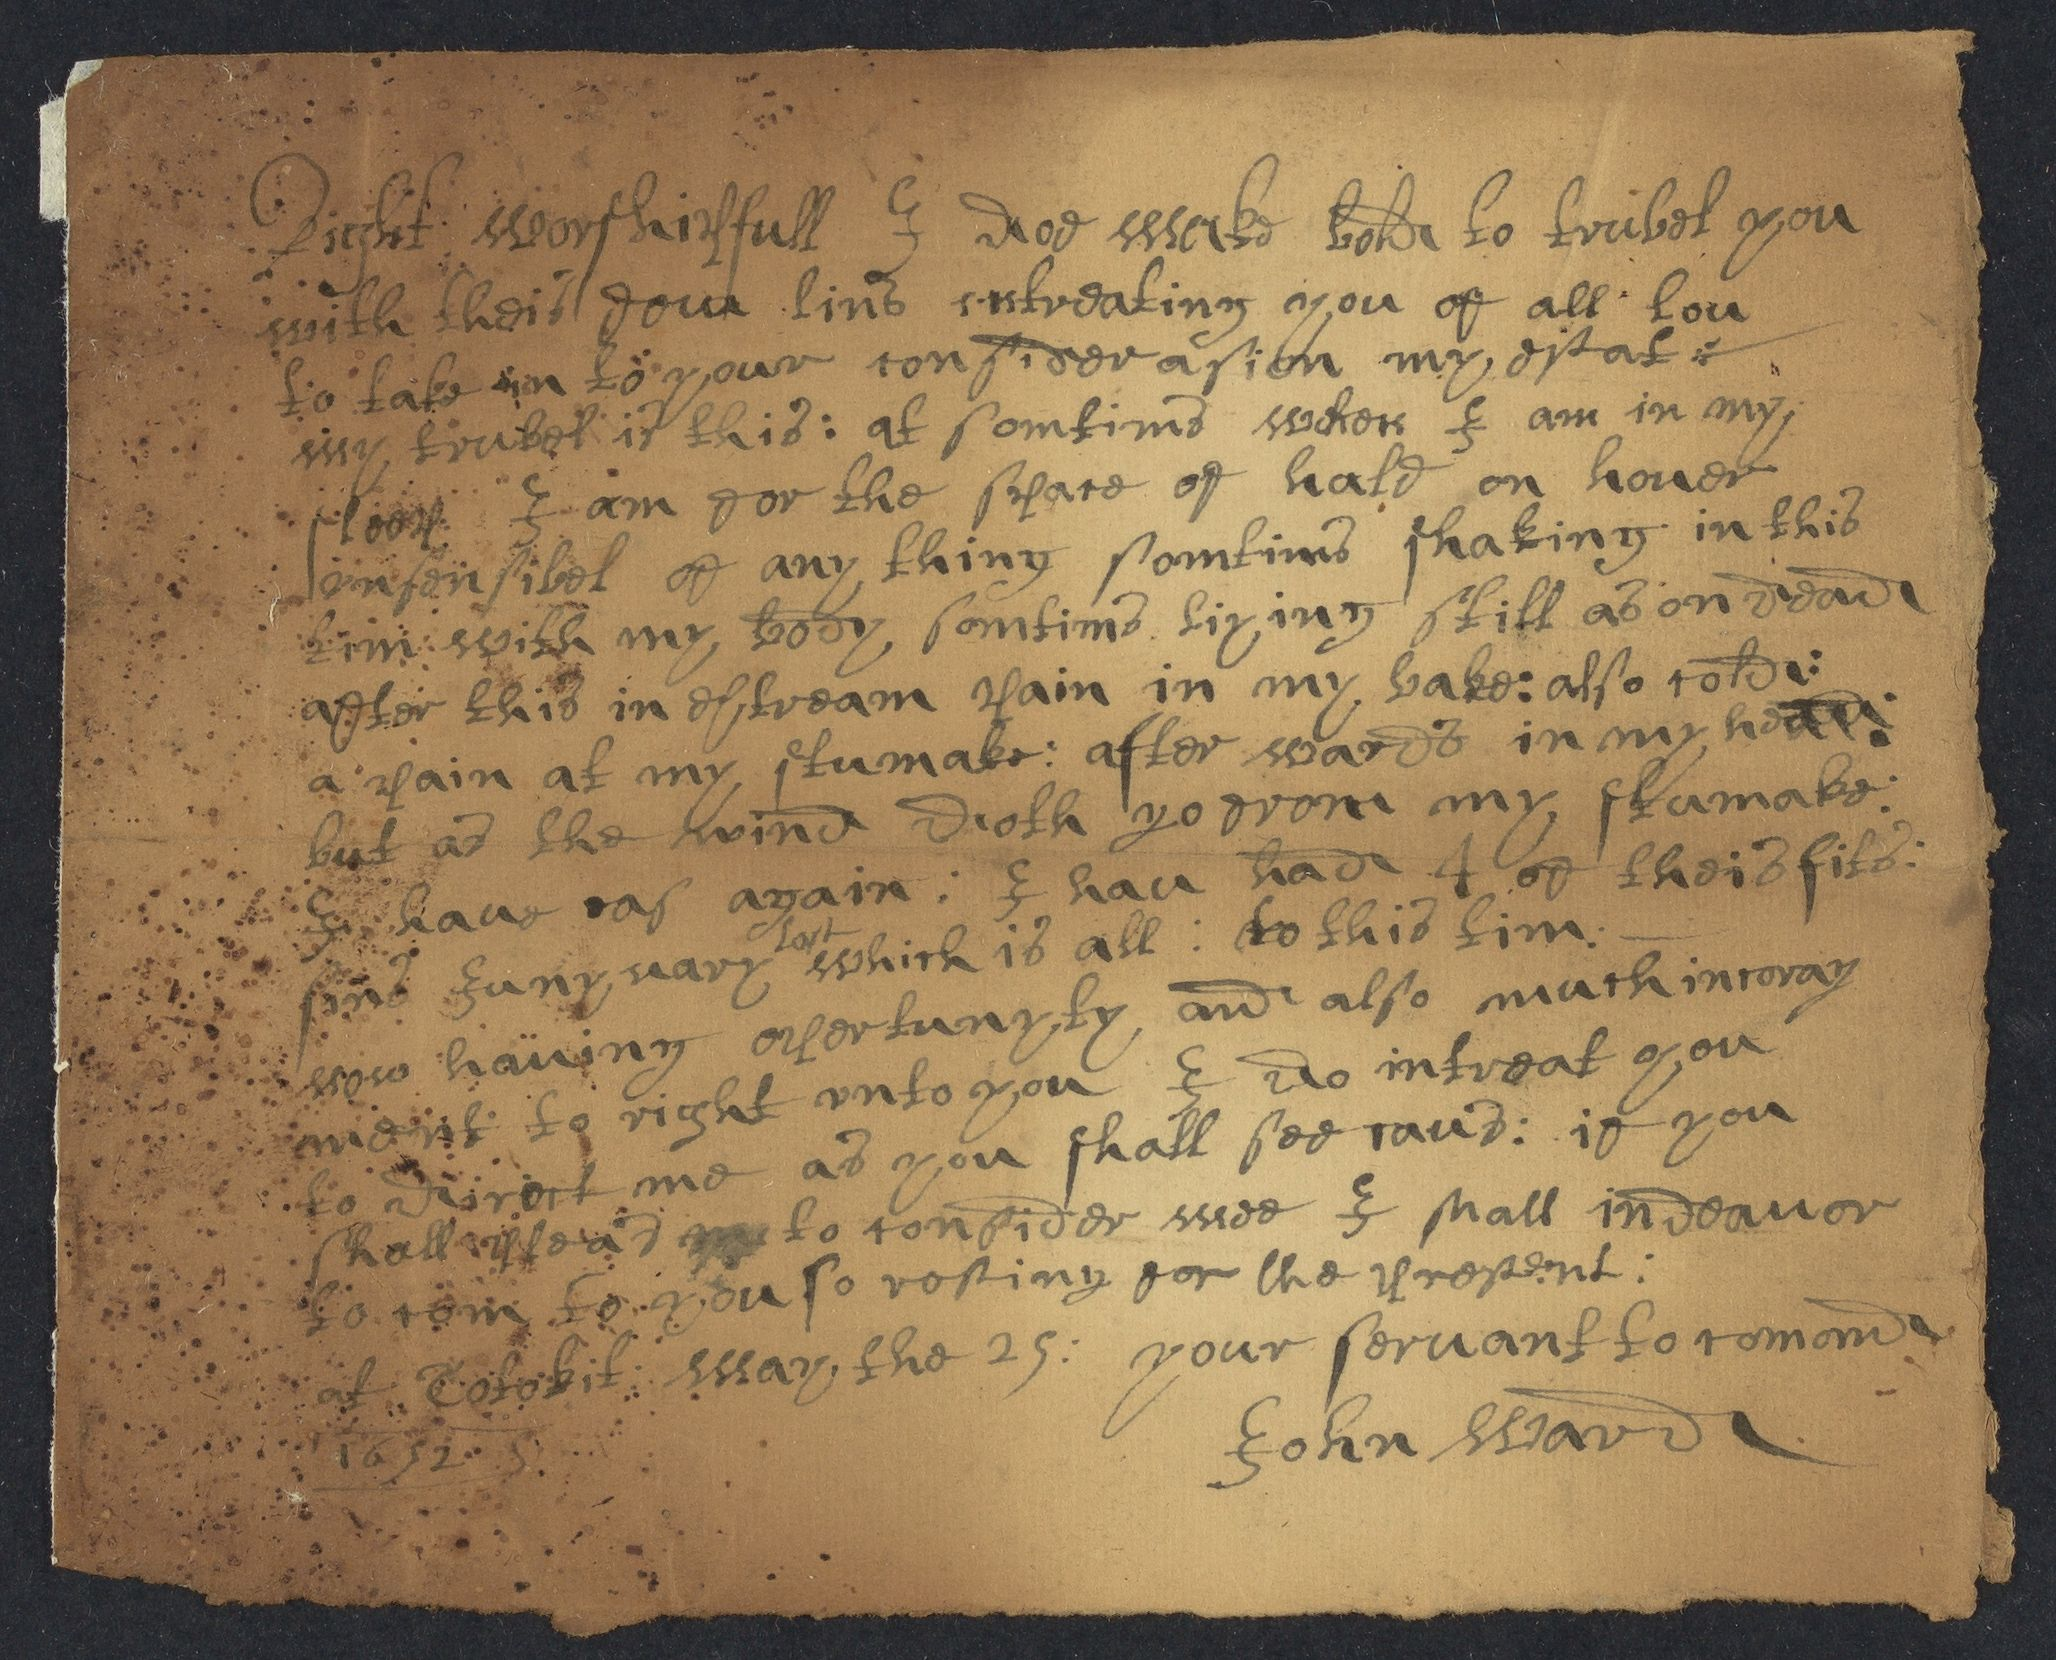 Ward, John, 1606-1693, autographed letter signed to John Winthrop; Cotohit [sic], Mass., 1 side (2 pages), 1652 May 29